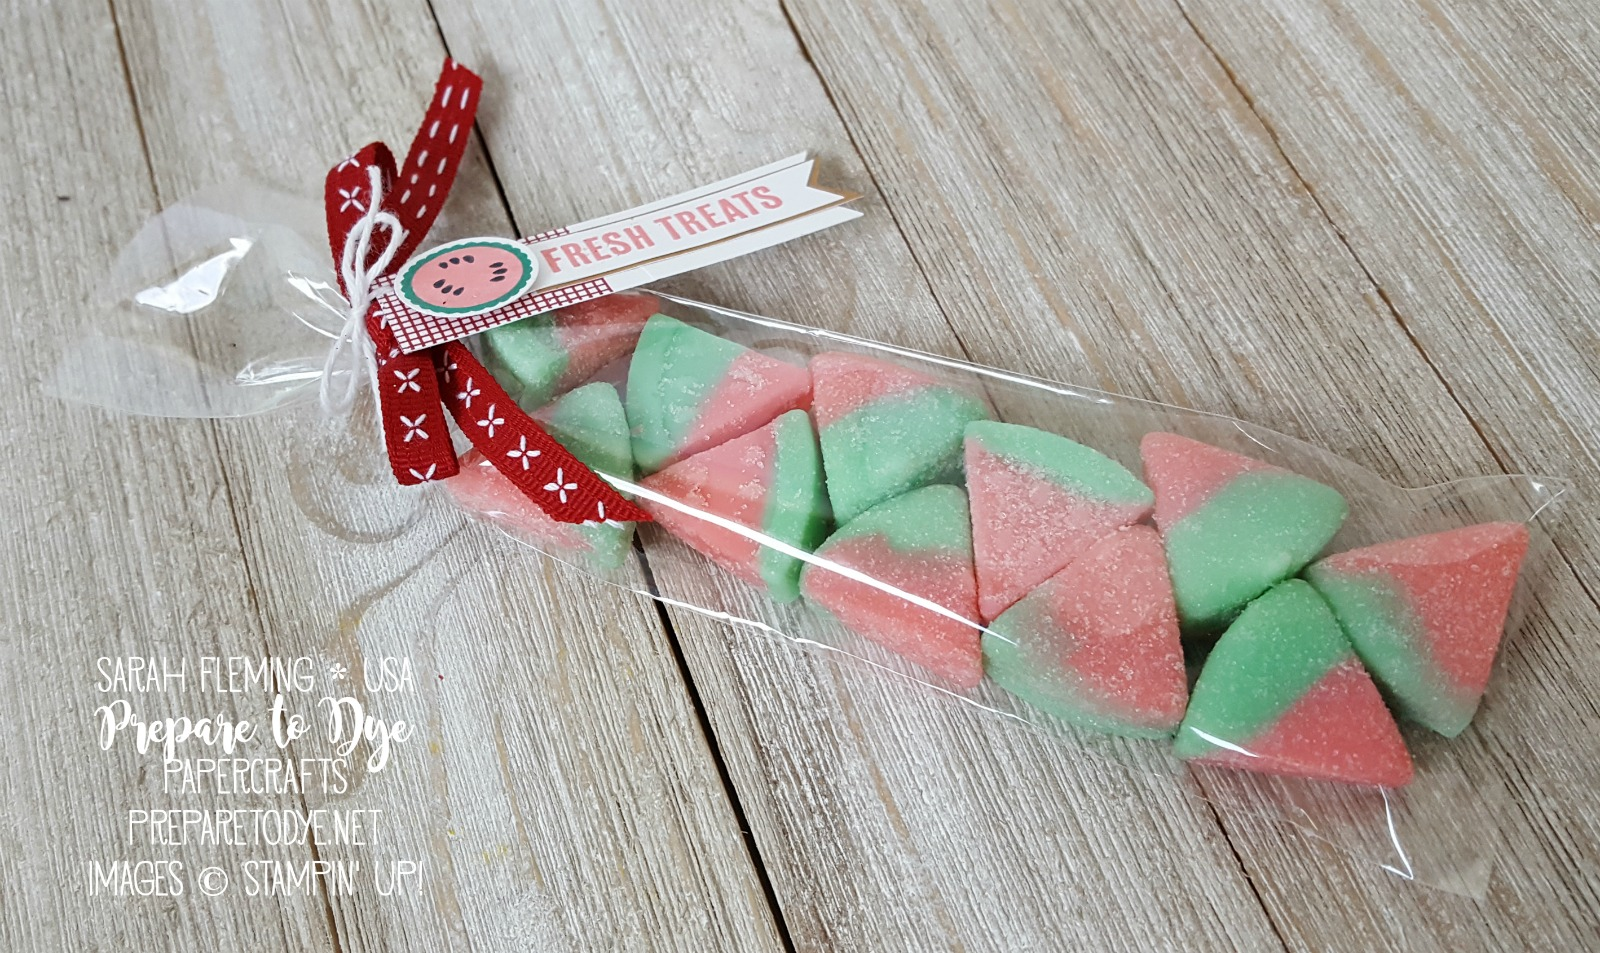 "Stampin' Up! simple watermelon candy treat packaging, Tabs for Everything, 1/4"" Double Stitched Ribbon - Sarah Fleming - Prepare to Dye Papercrafts"